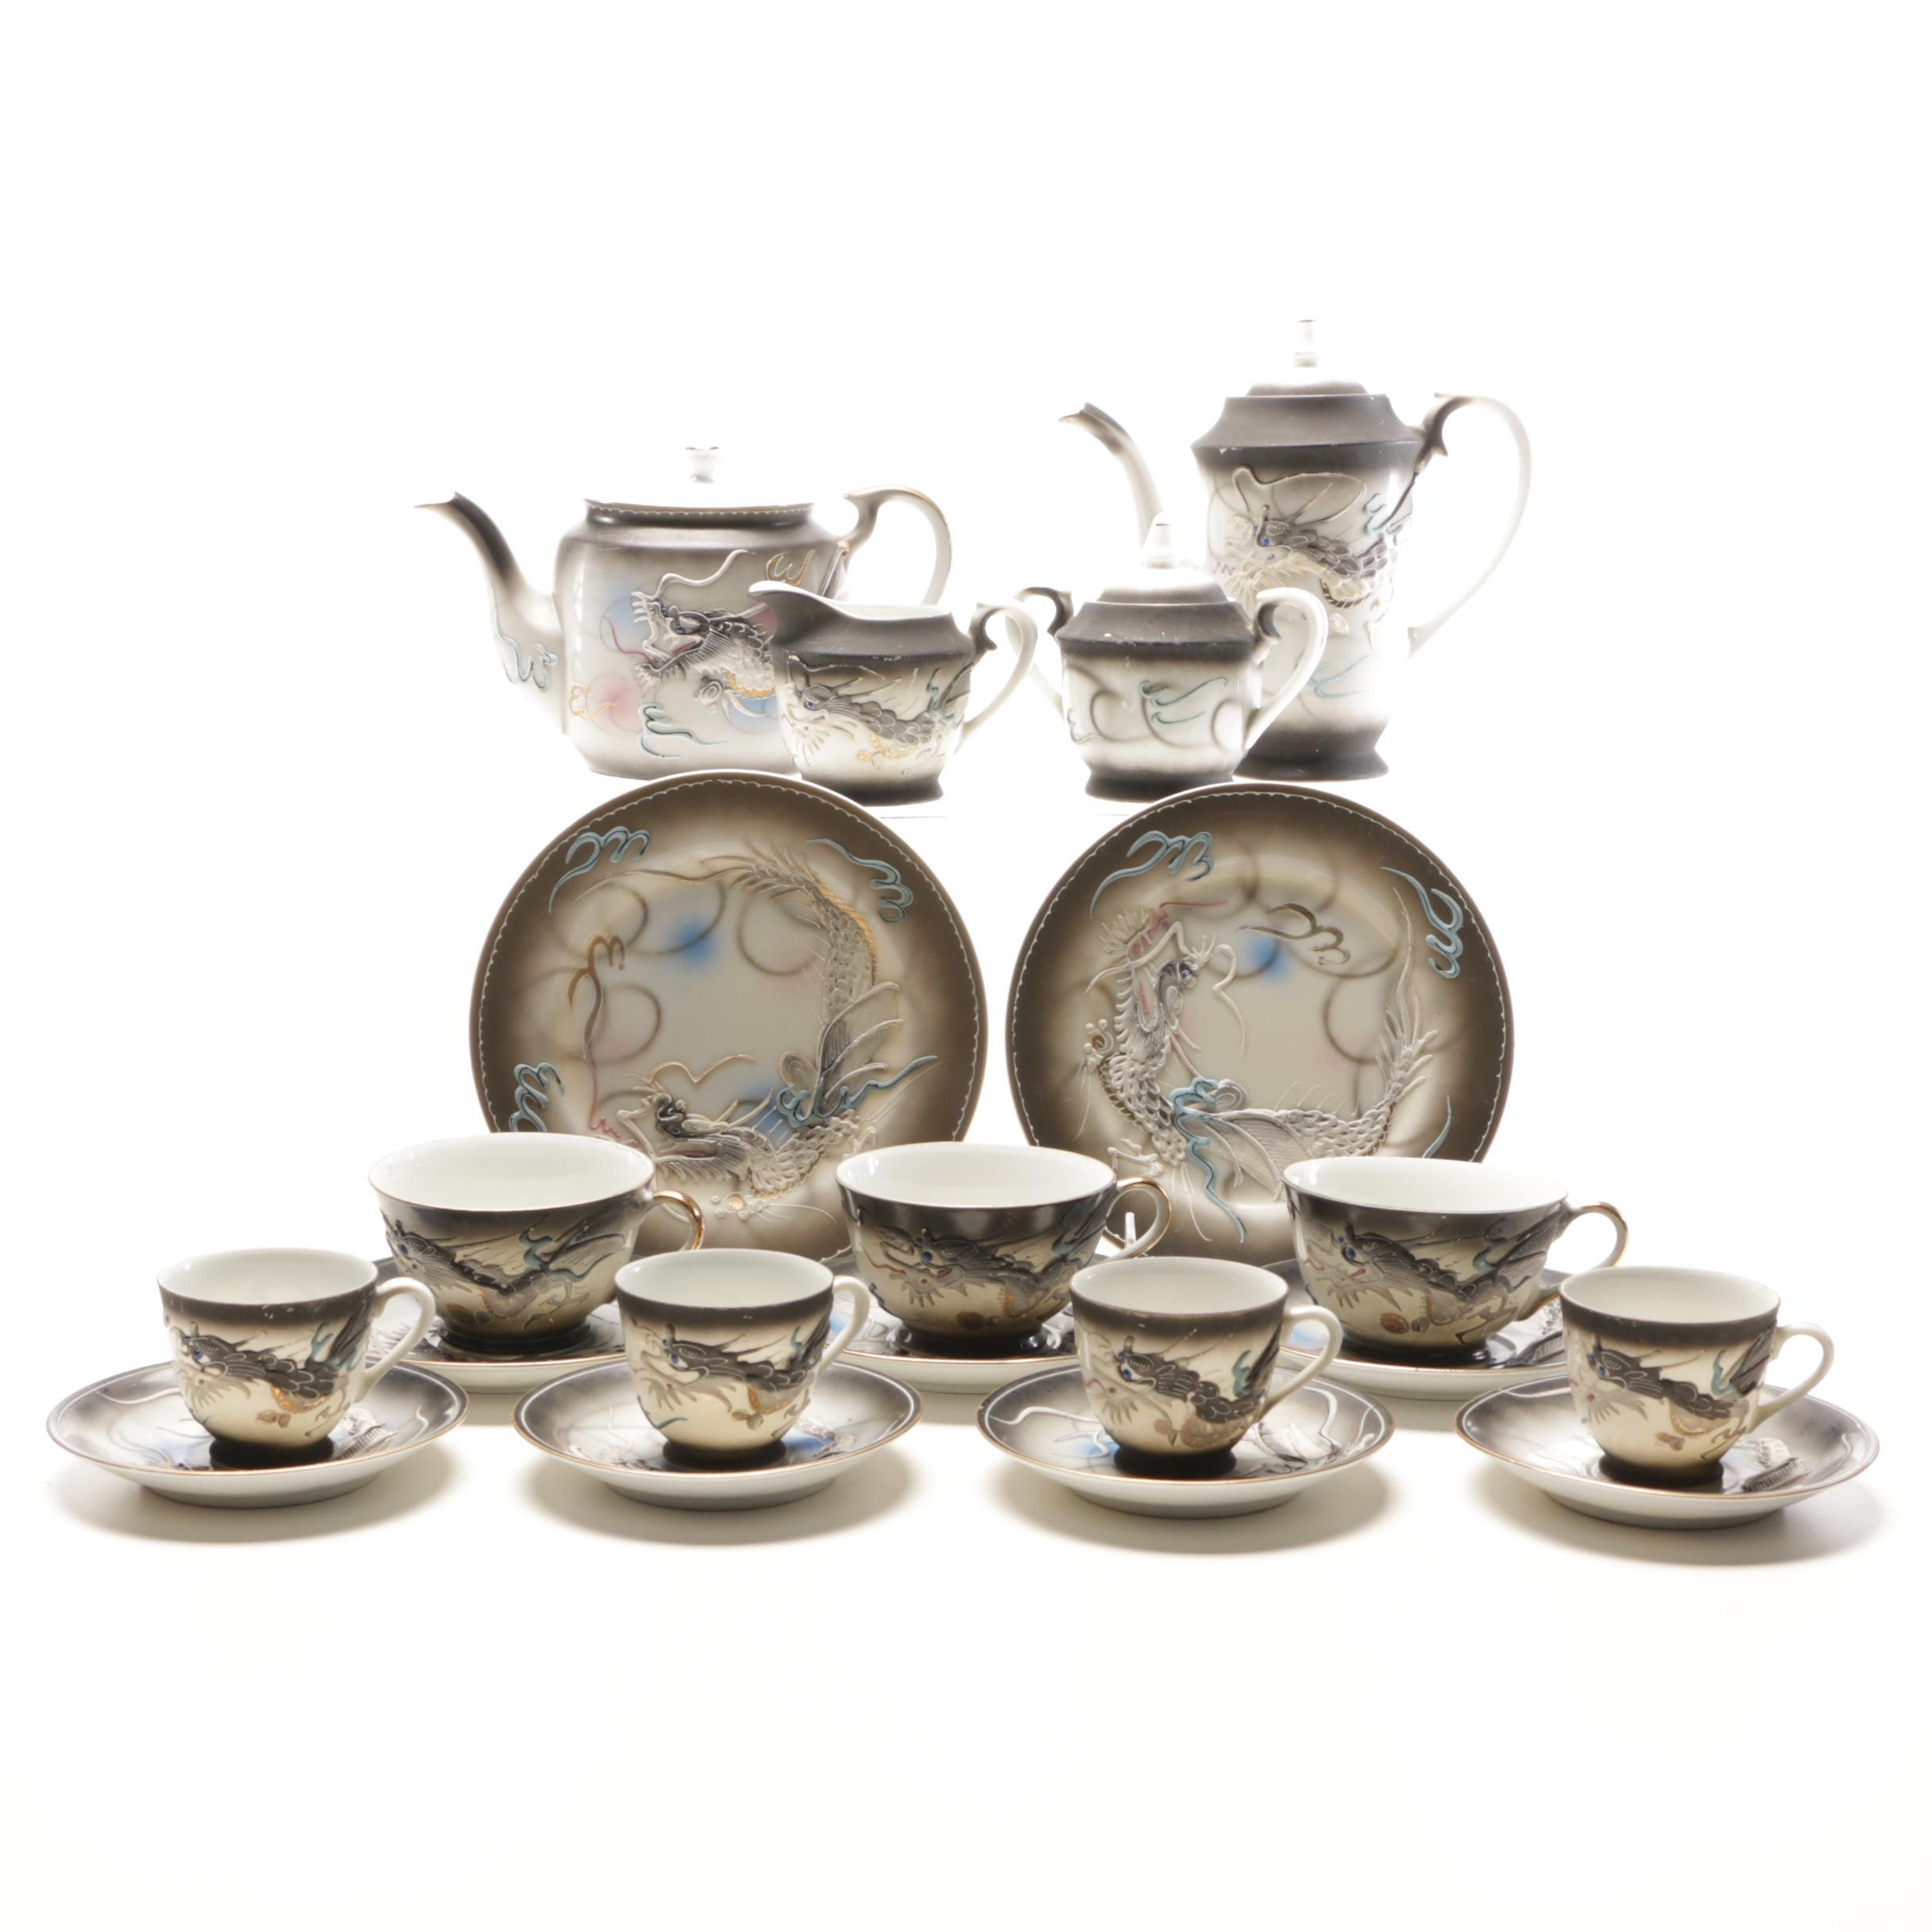 Japanese Moriage Dragonware Tea Set with Swirl Patterned Tea Pot, Cream/Sugar